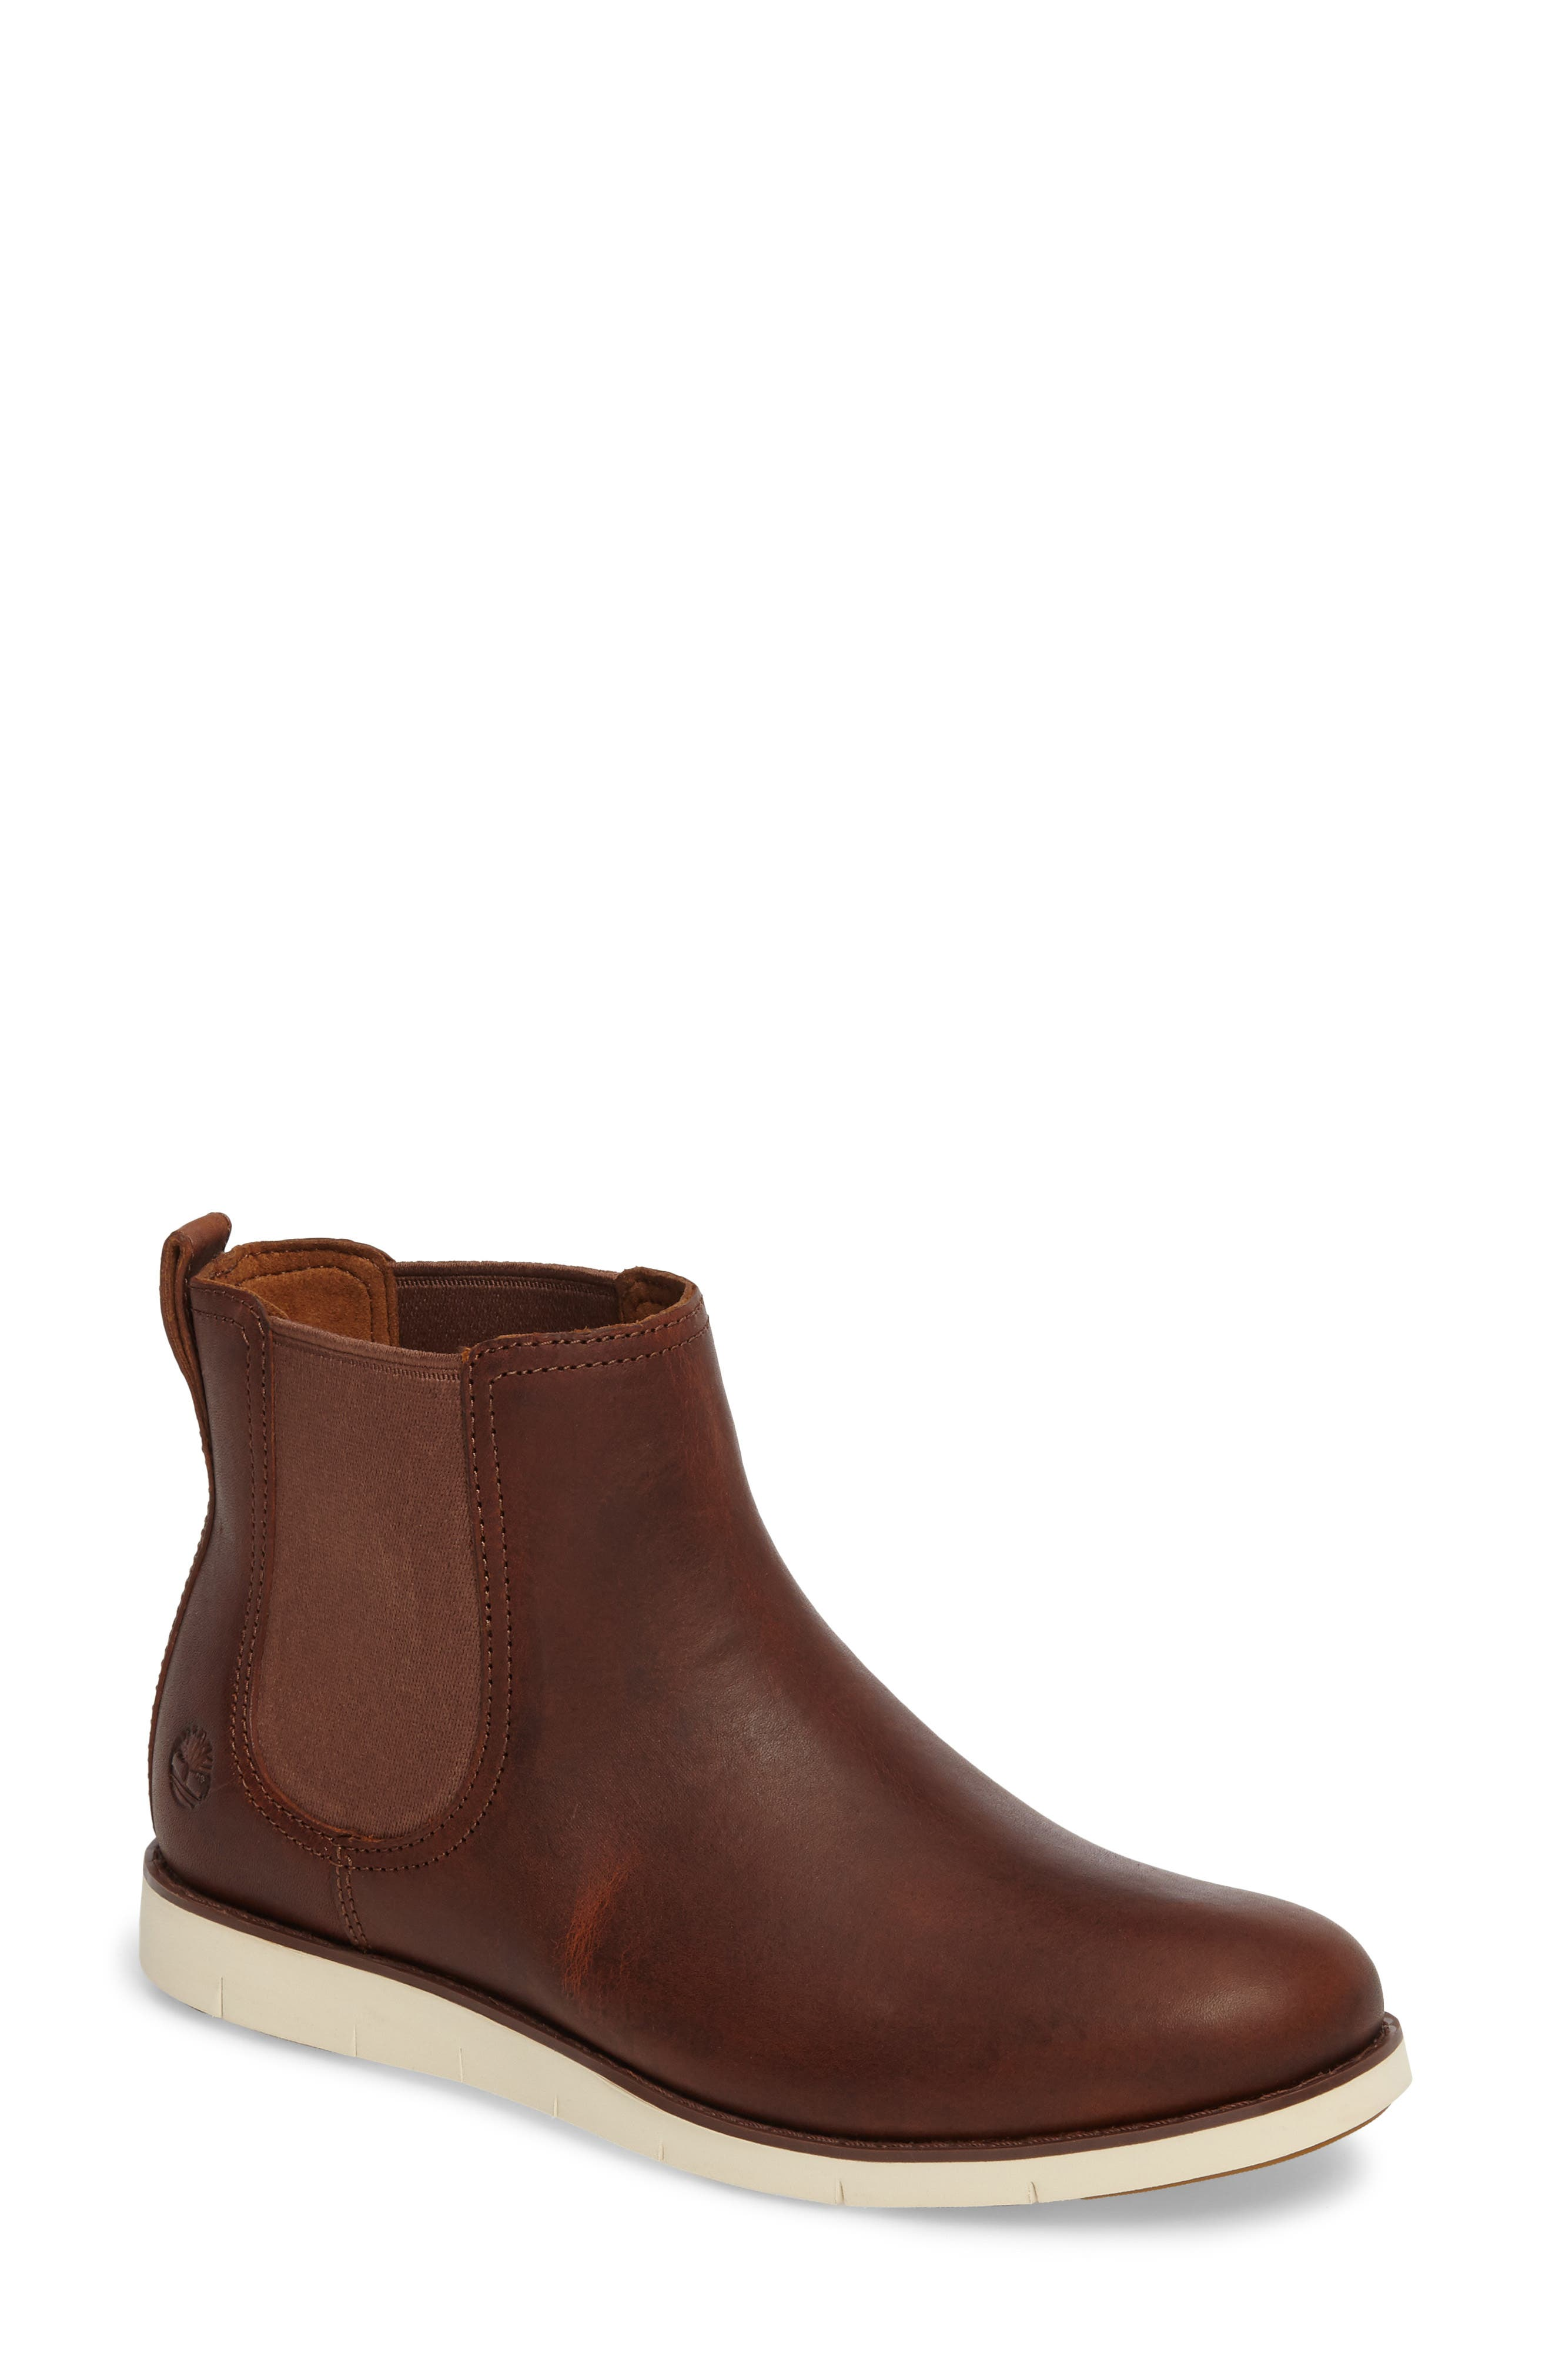 Lakeville Chelsea Boot,                             Main thumbnail 1, color,                             Medium Brown Leather